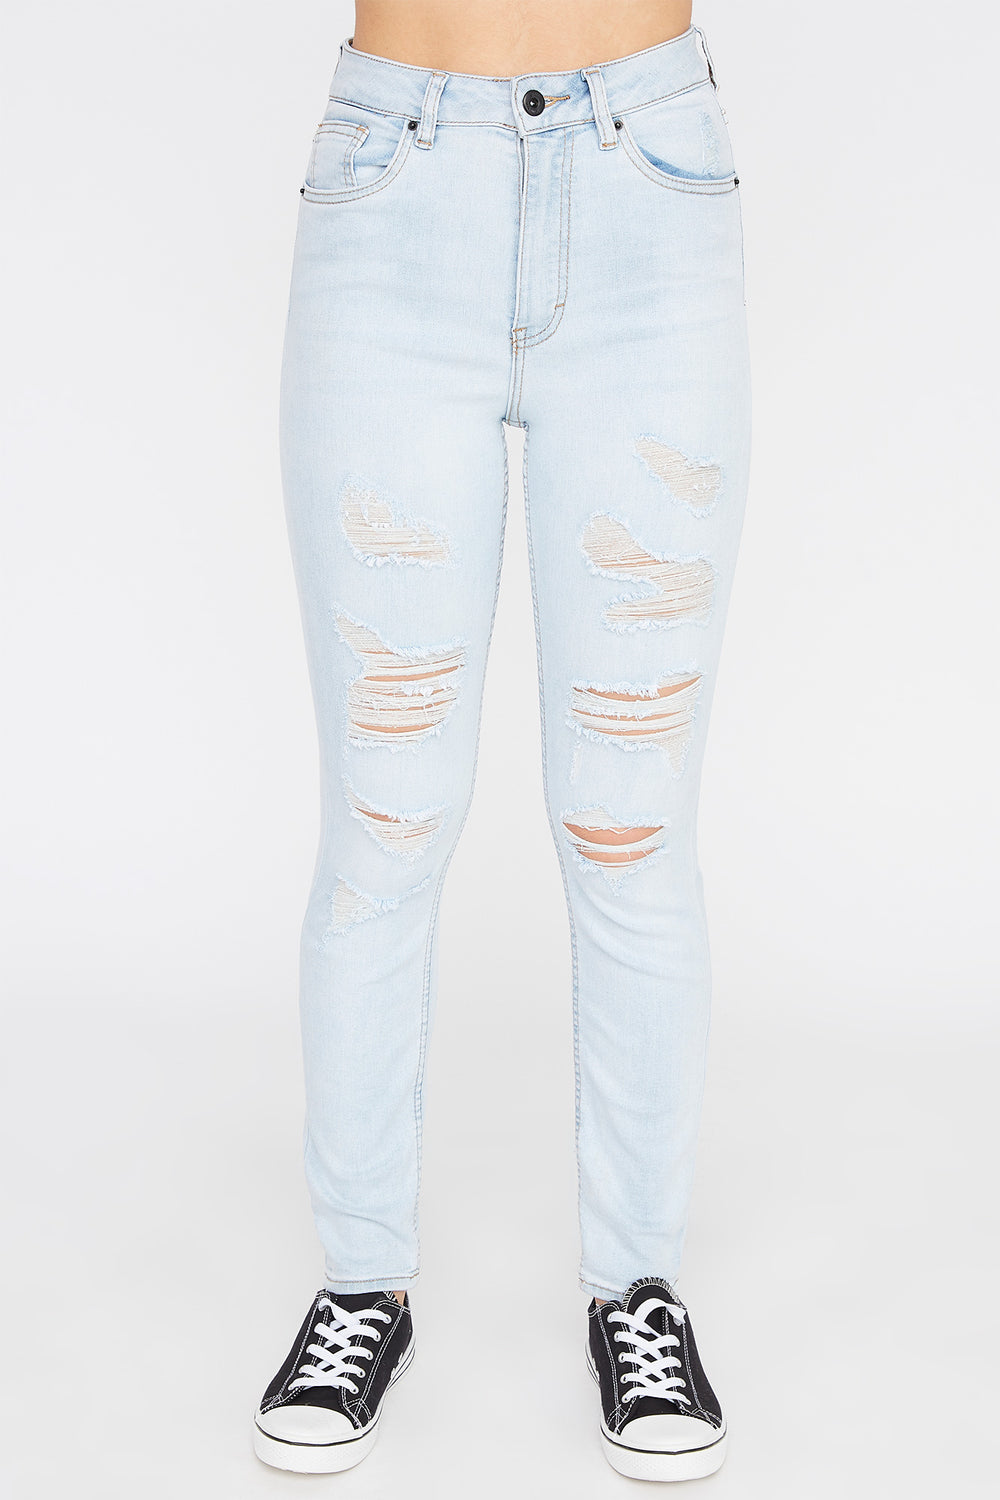 Zoo York Womens Light Wash Distressed High Rise Jeans Light Denim Blue